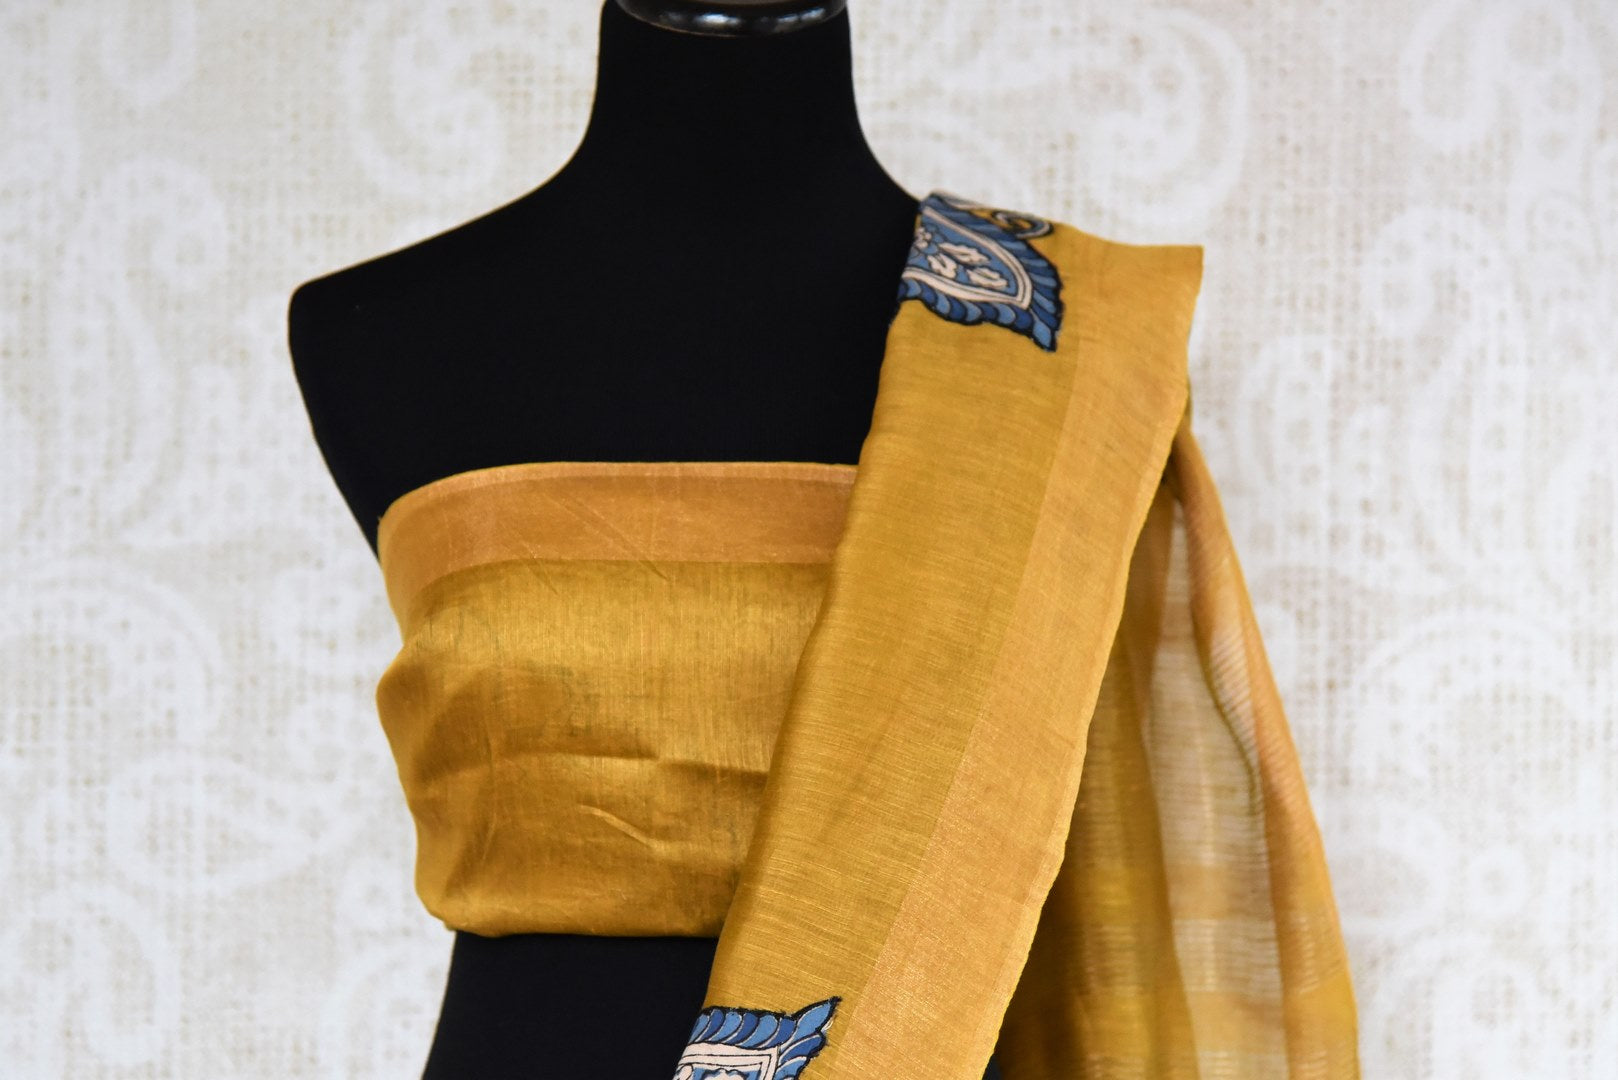 Mustard yellow tussar silk sari for online shopping in USA with peacock Kalamkari applique. Beautifully designed woven sari is a graceful choice for special occasions. Shop Indian handloom sarees, silk saris in USA from an alluring collection available at Pure Elegance fashion store.-blouse pallu